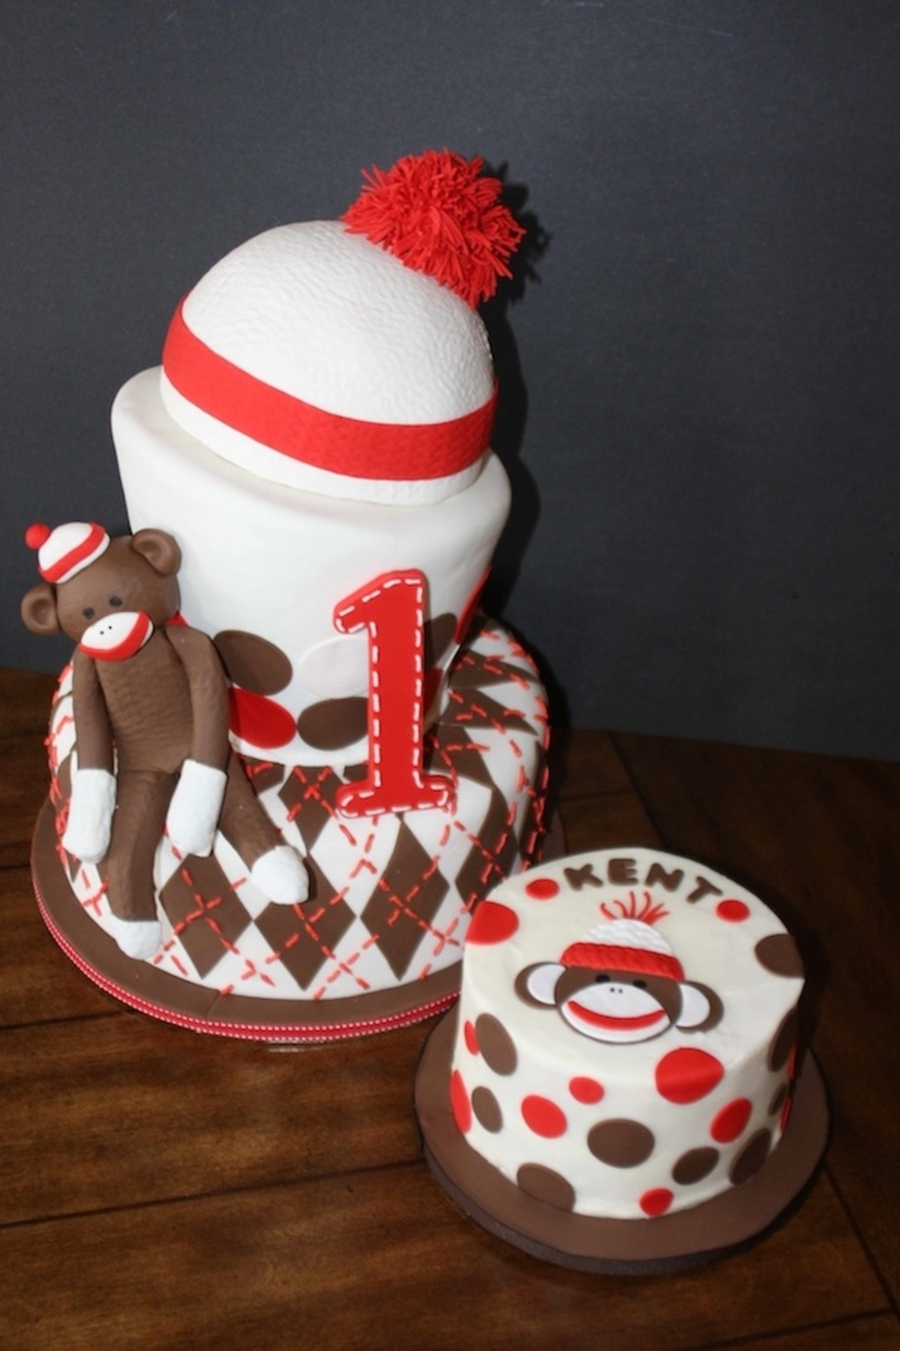 Remarkable Sock Monkey 1St Birthday Cake Cakecentral Com Funny Birthday Cards Online Barepcheapnameinfo